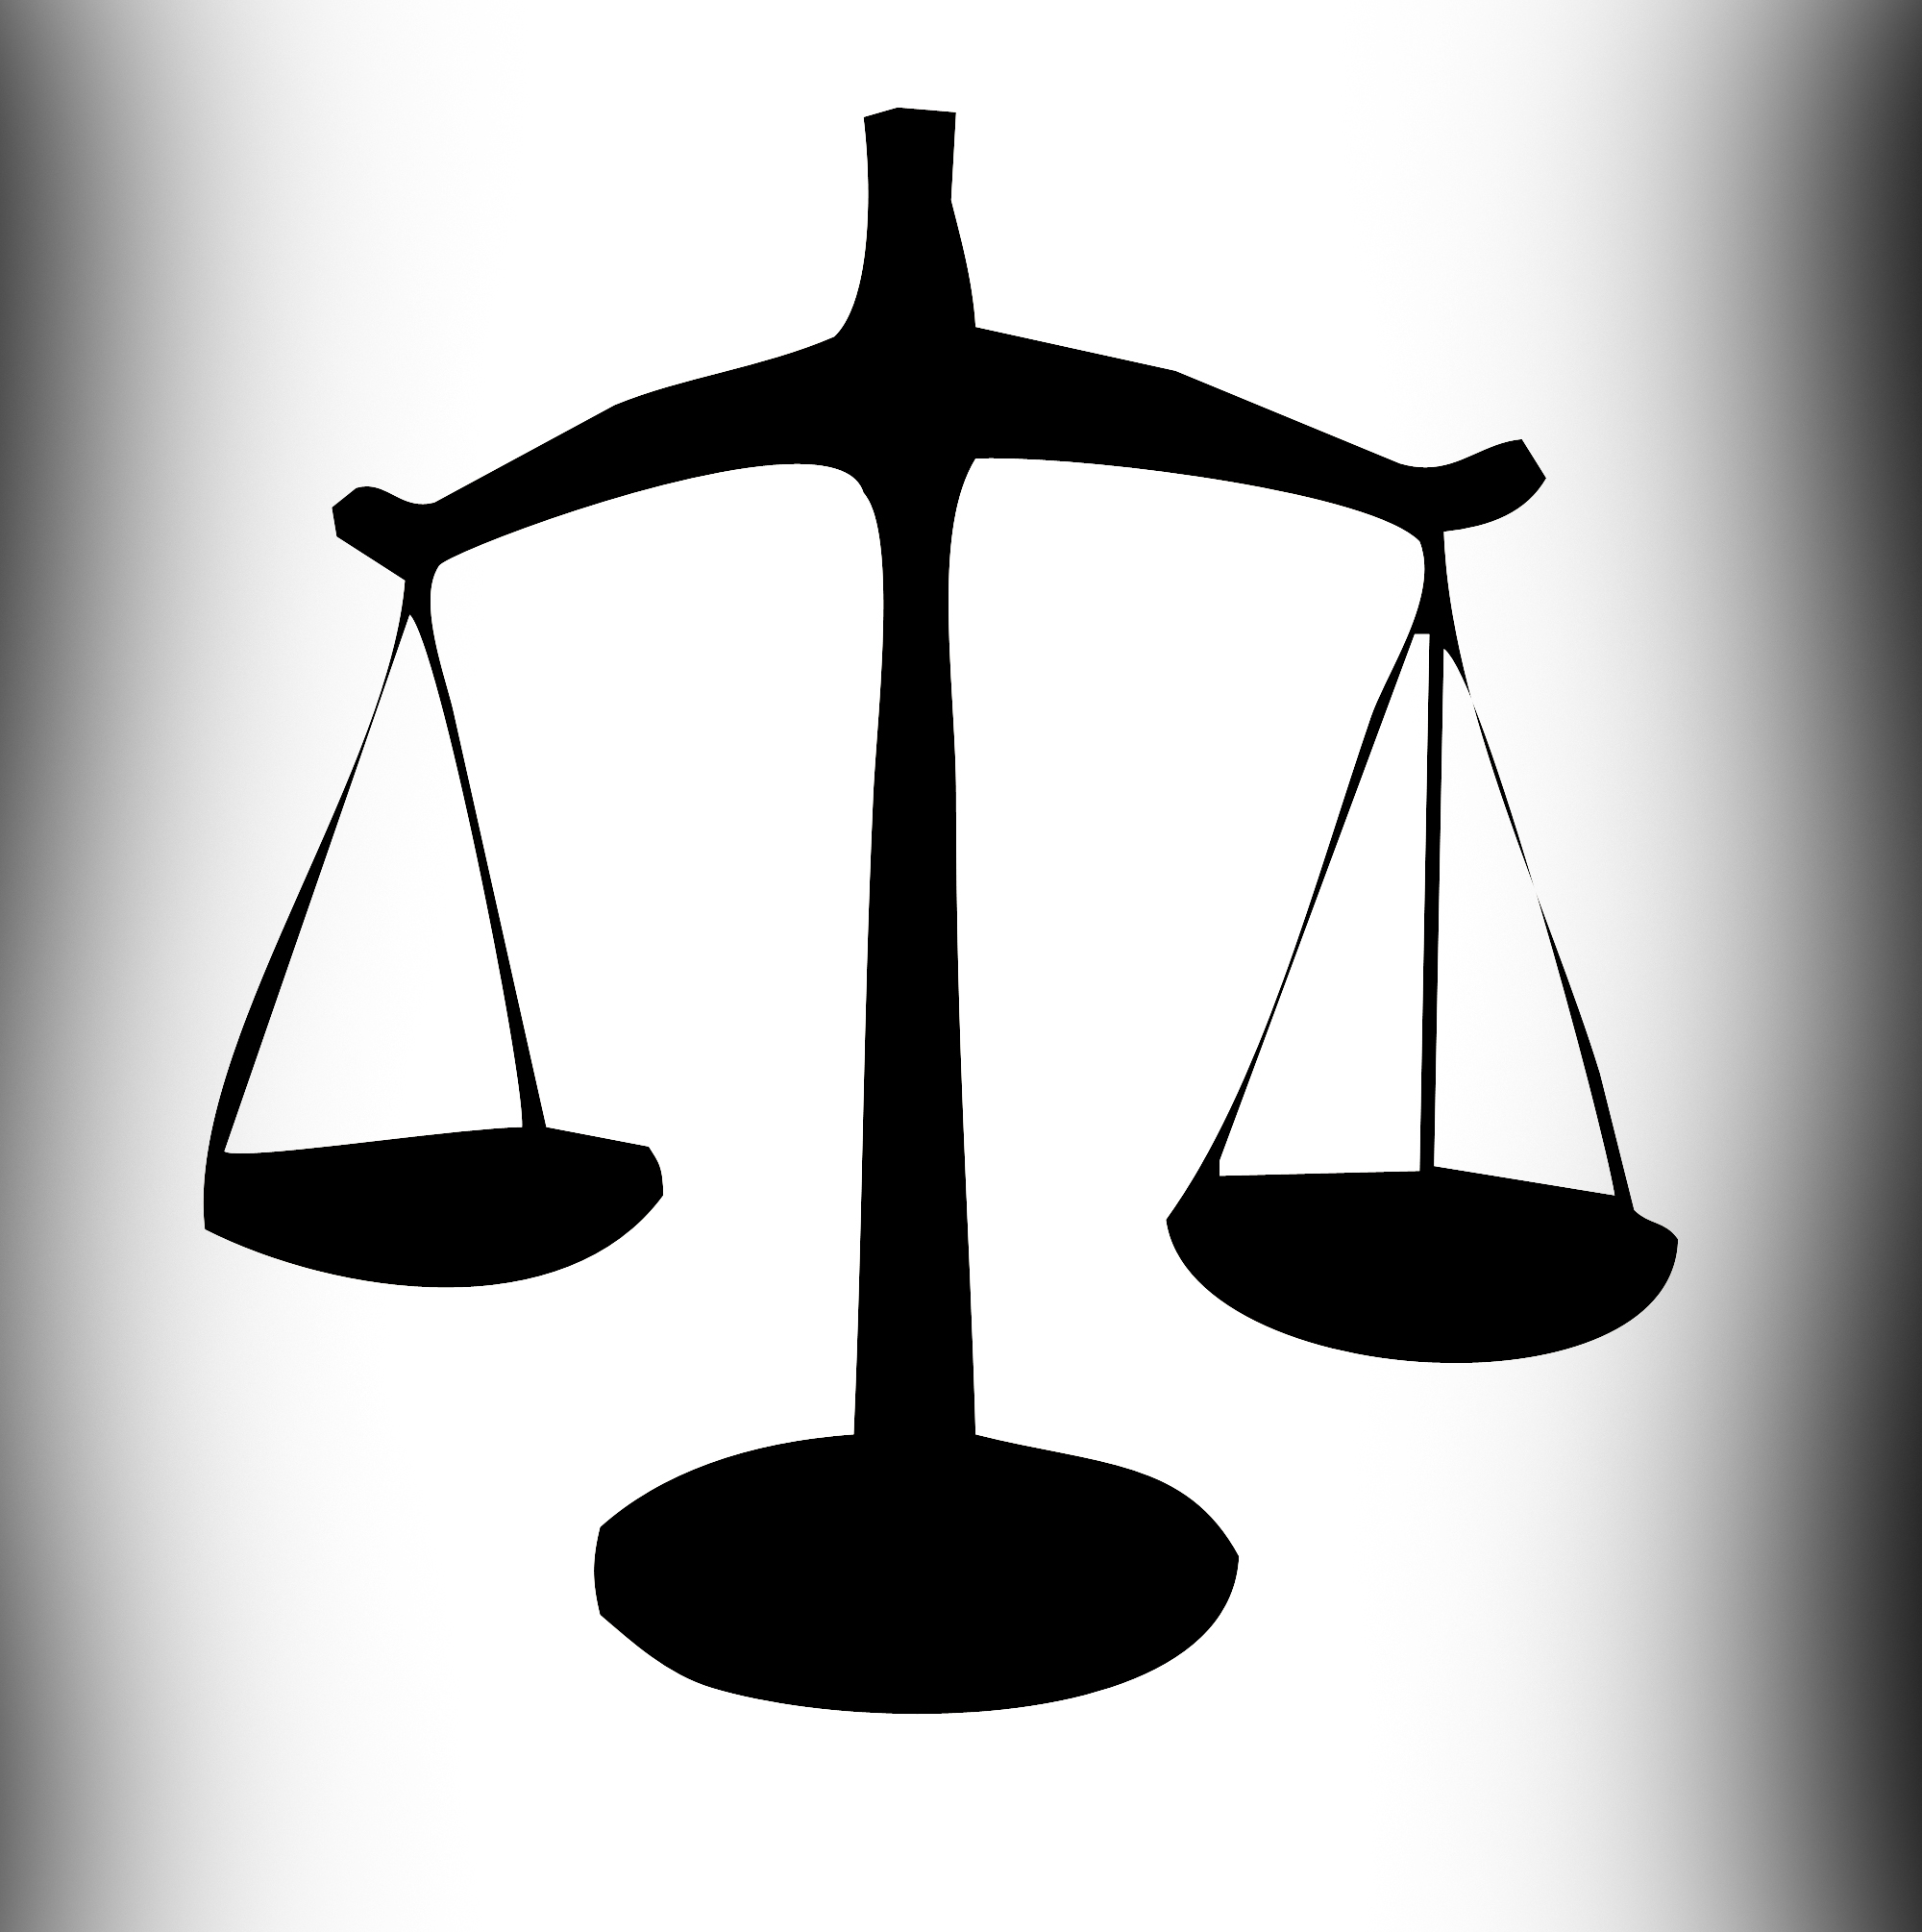 Law scales silhouette